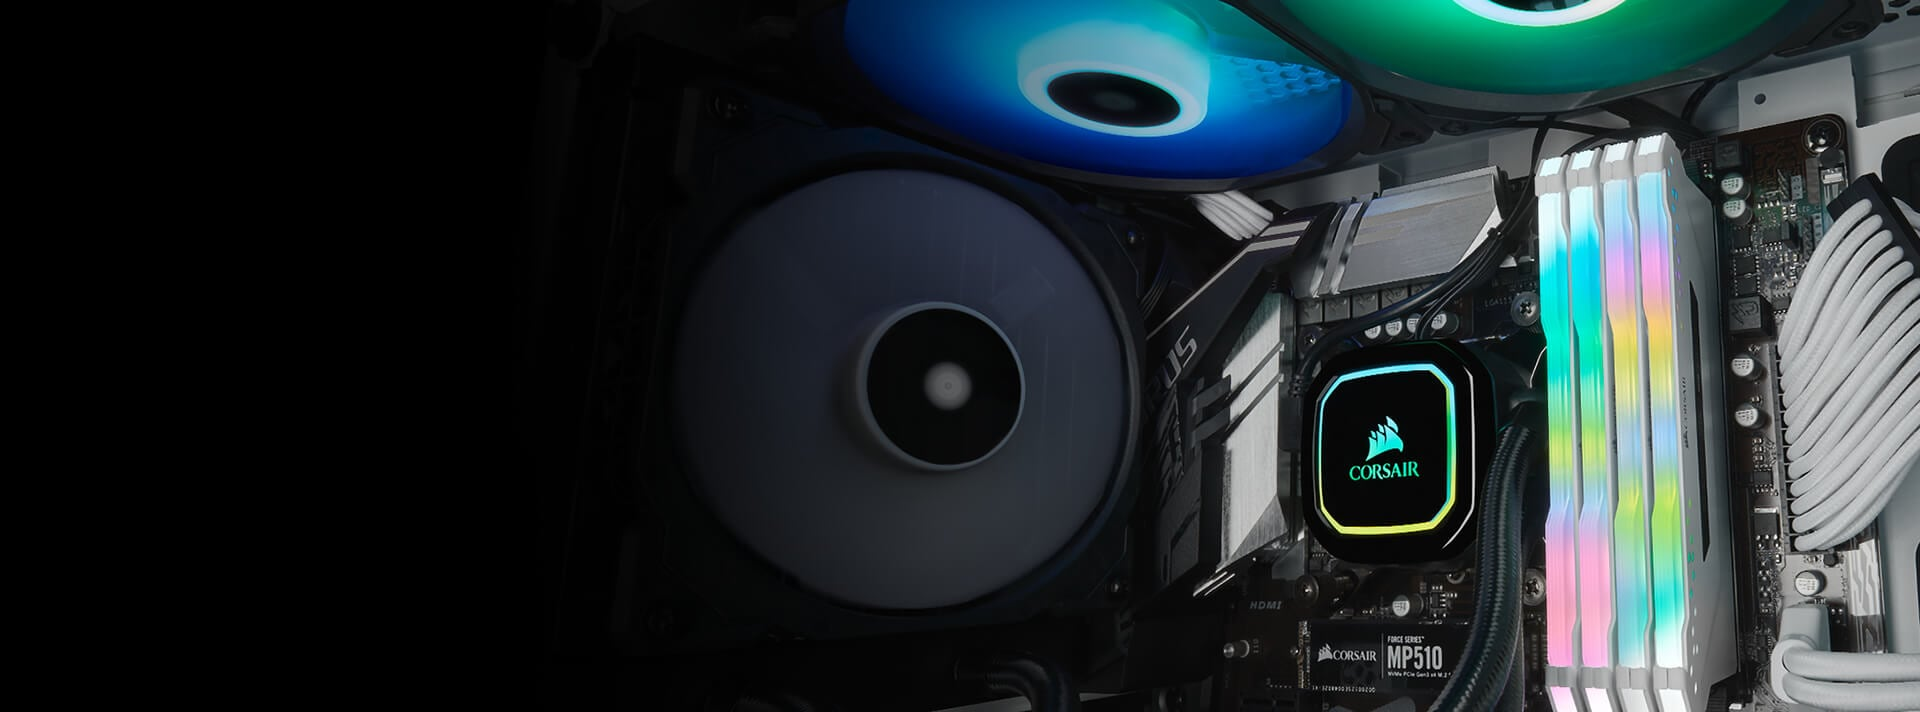 CORSAIR iCUE H60i PRO XT LIQUID CPU COOLER